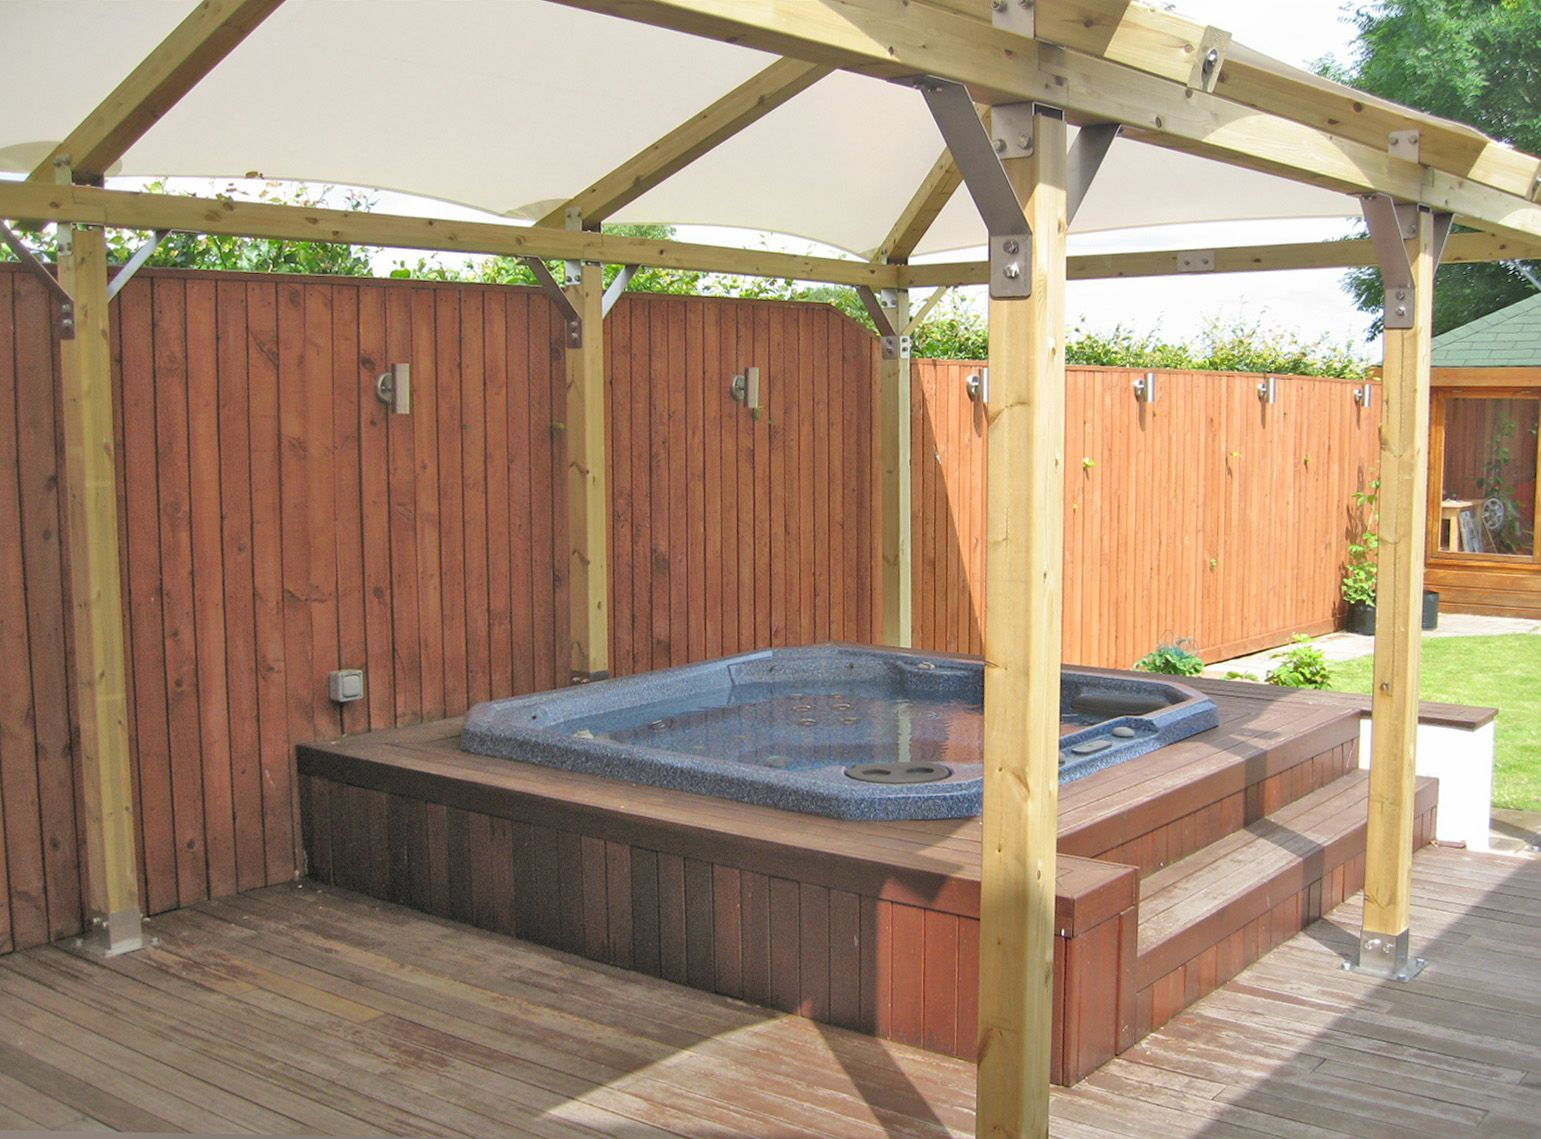 Diy Hot Tub Diy Spa Enclosure Google Search Decking And Hot Tub